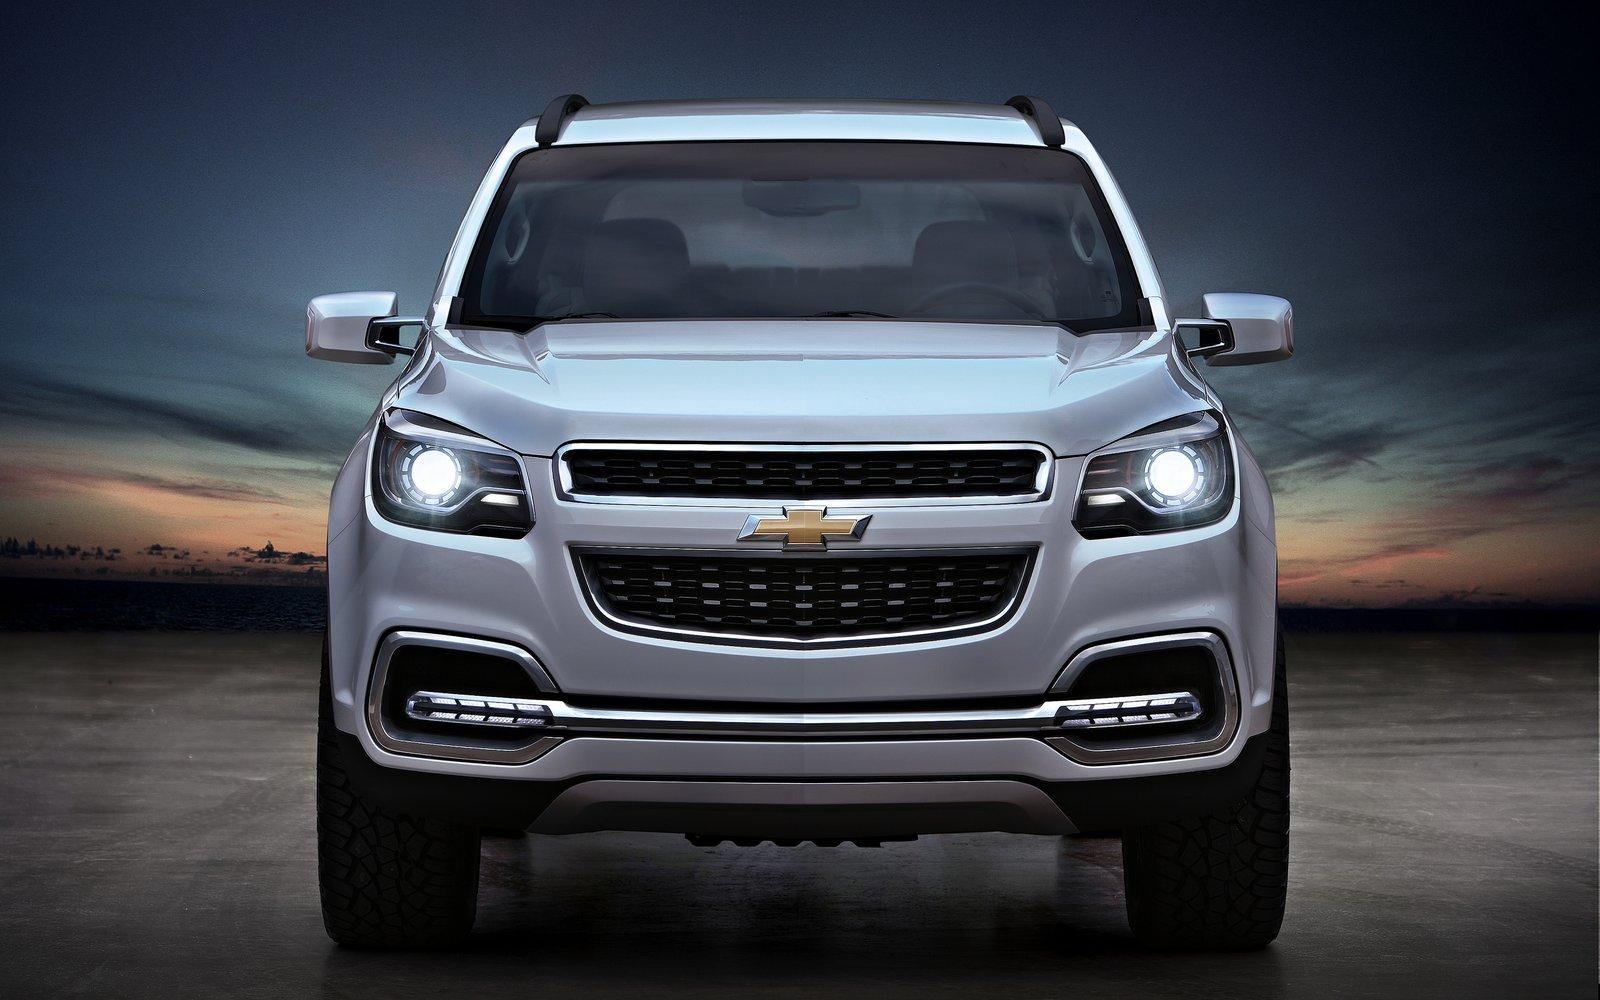 2013 Chevrolet Trailblazer  image 427386